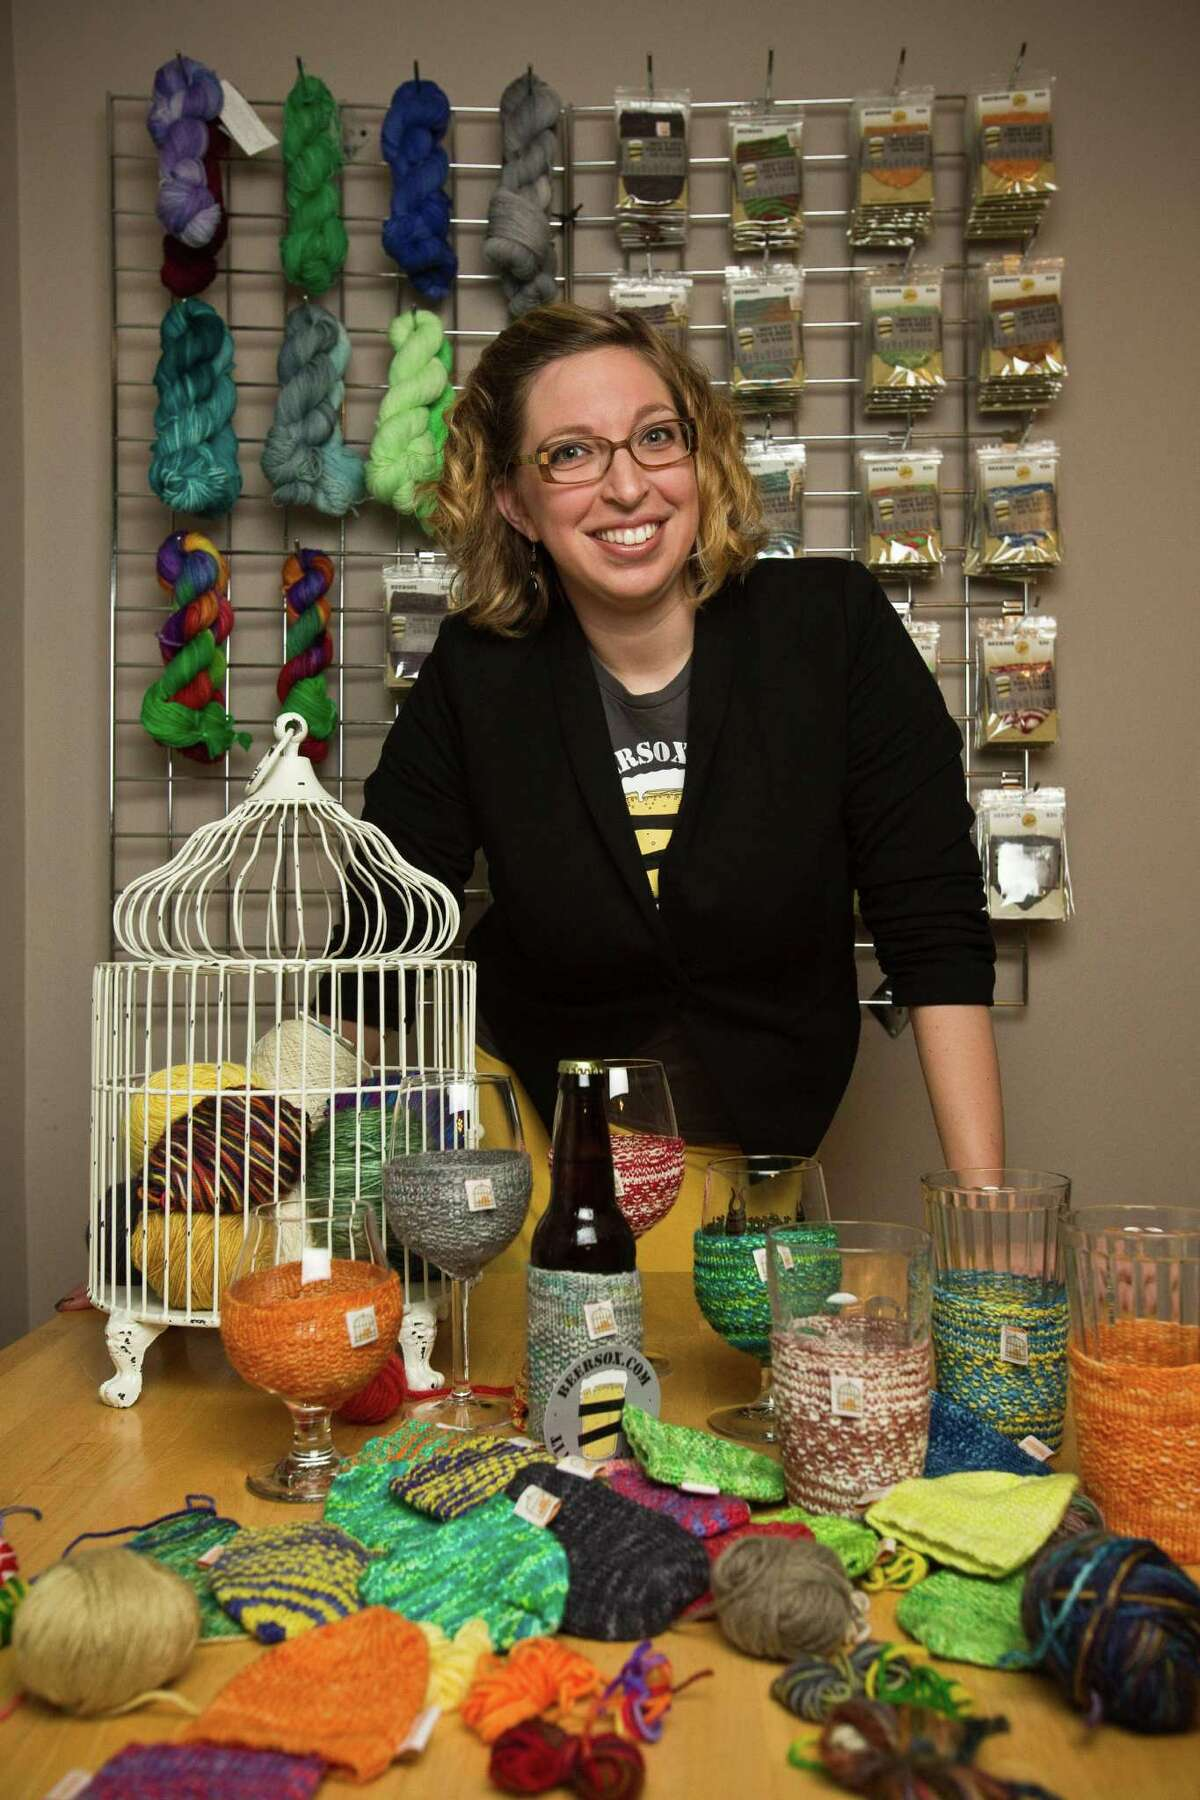 Katie Mahoney, owner of The Caged Yarn, in her home workshop Feb. 19, 2013 in Houston, TX.